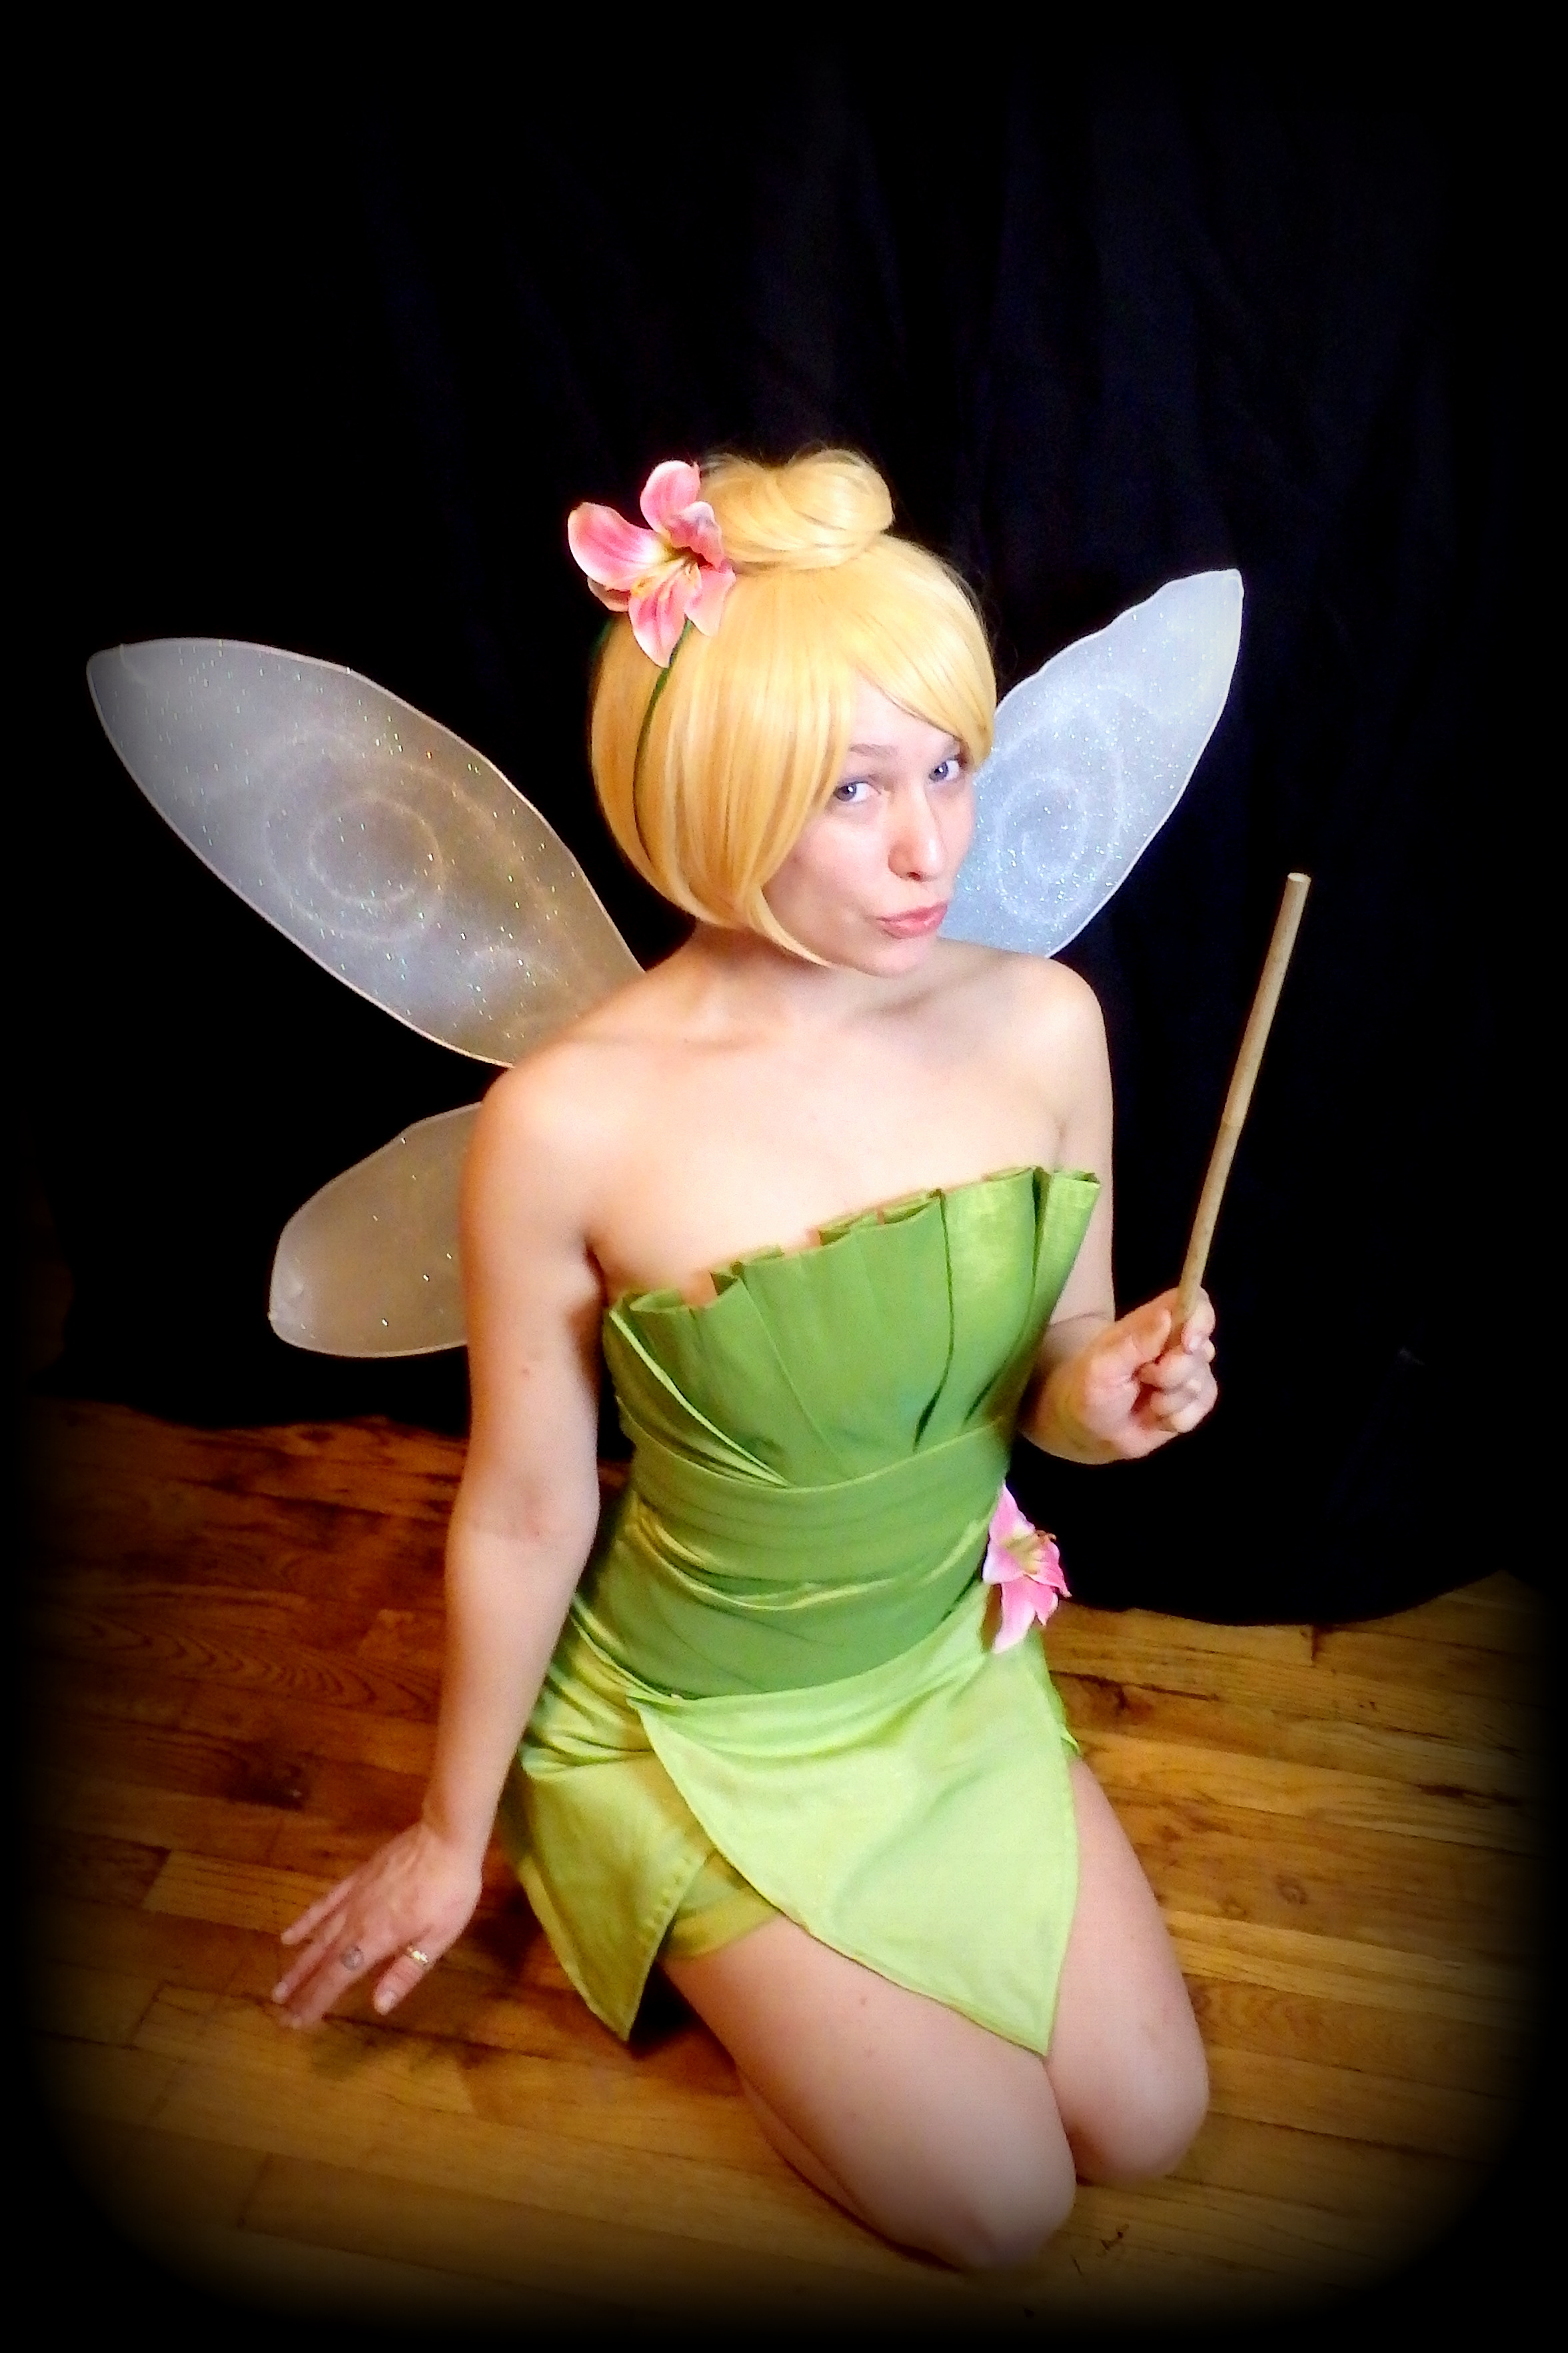 Earth Fairy Entertainment fairy birthday party, Tinkerbell lool alike costume character, professiona